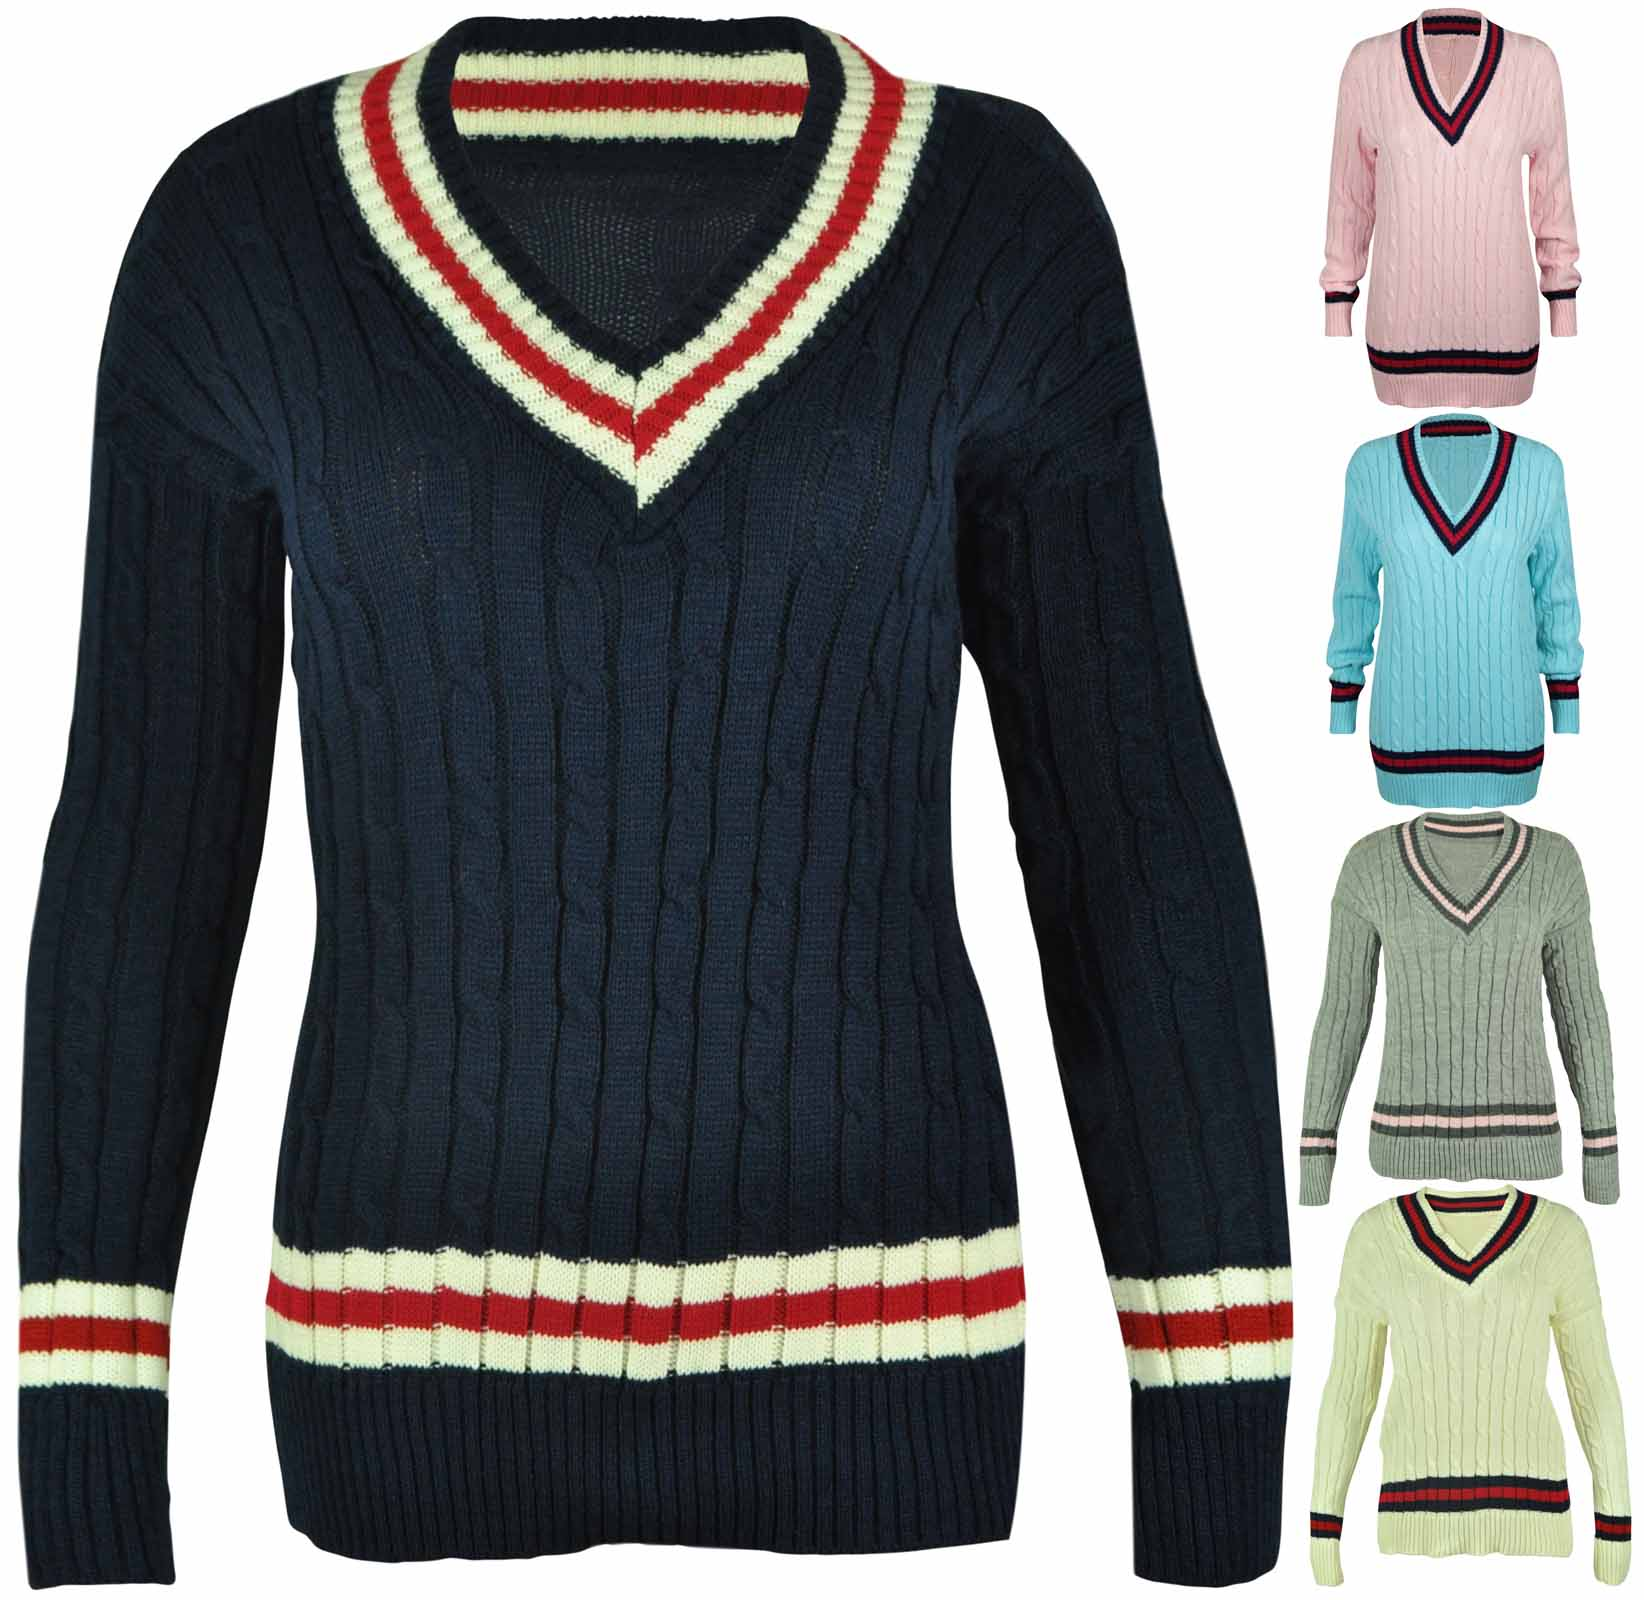 NEW LADIES V NECK CABLE KNITTED CRICKET JUMPER WOMENS STRETCH LONG TOP SIZE 8-16